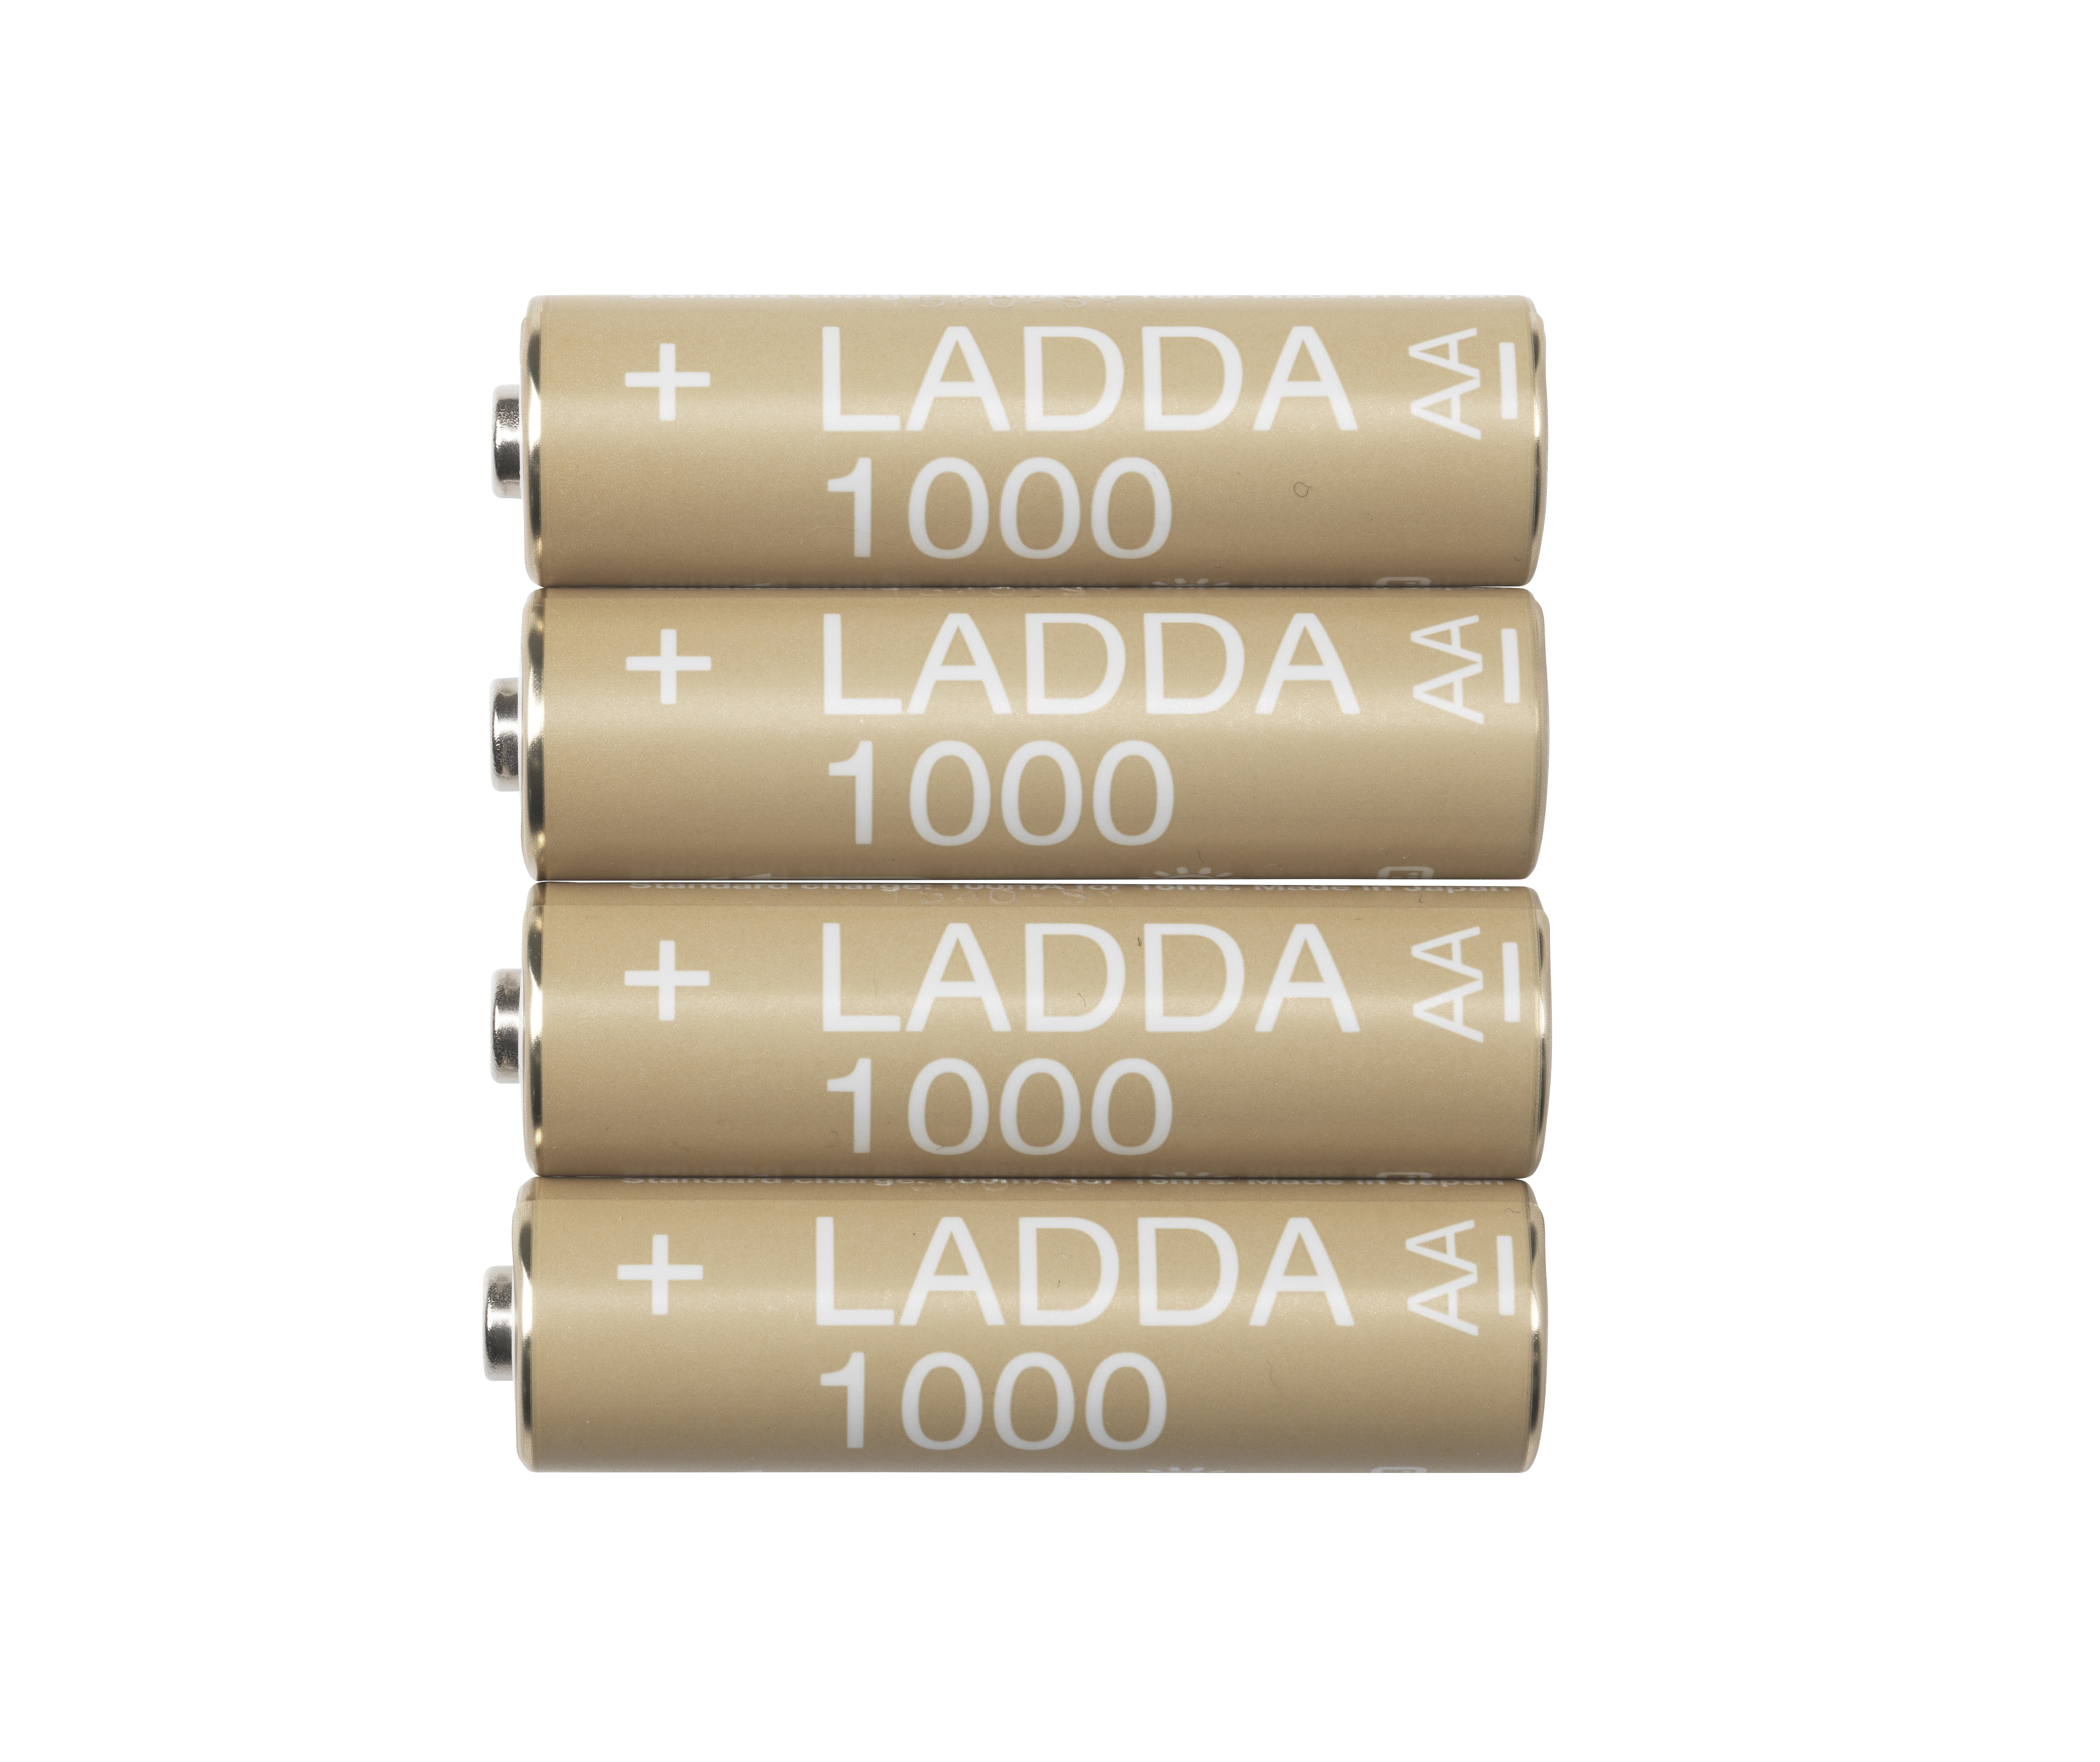 Stylish rechargeable batteries: IKEA launches new range - LADDA battery 1000 high power